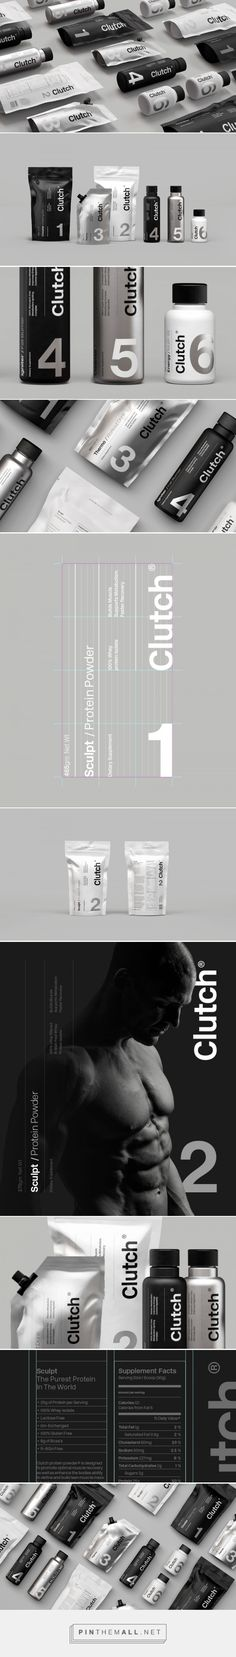 Clutch Bodyshop Fitness and Nutrition Branding and Packaging by SocioDesign Design Logo, Label Design, Box Design, Design Agency, Identity Design, Typography Design, Package Design, Graphic Design, Branding And Packaging